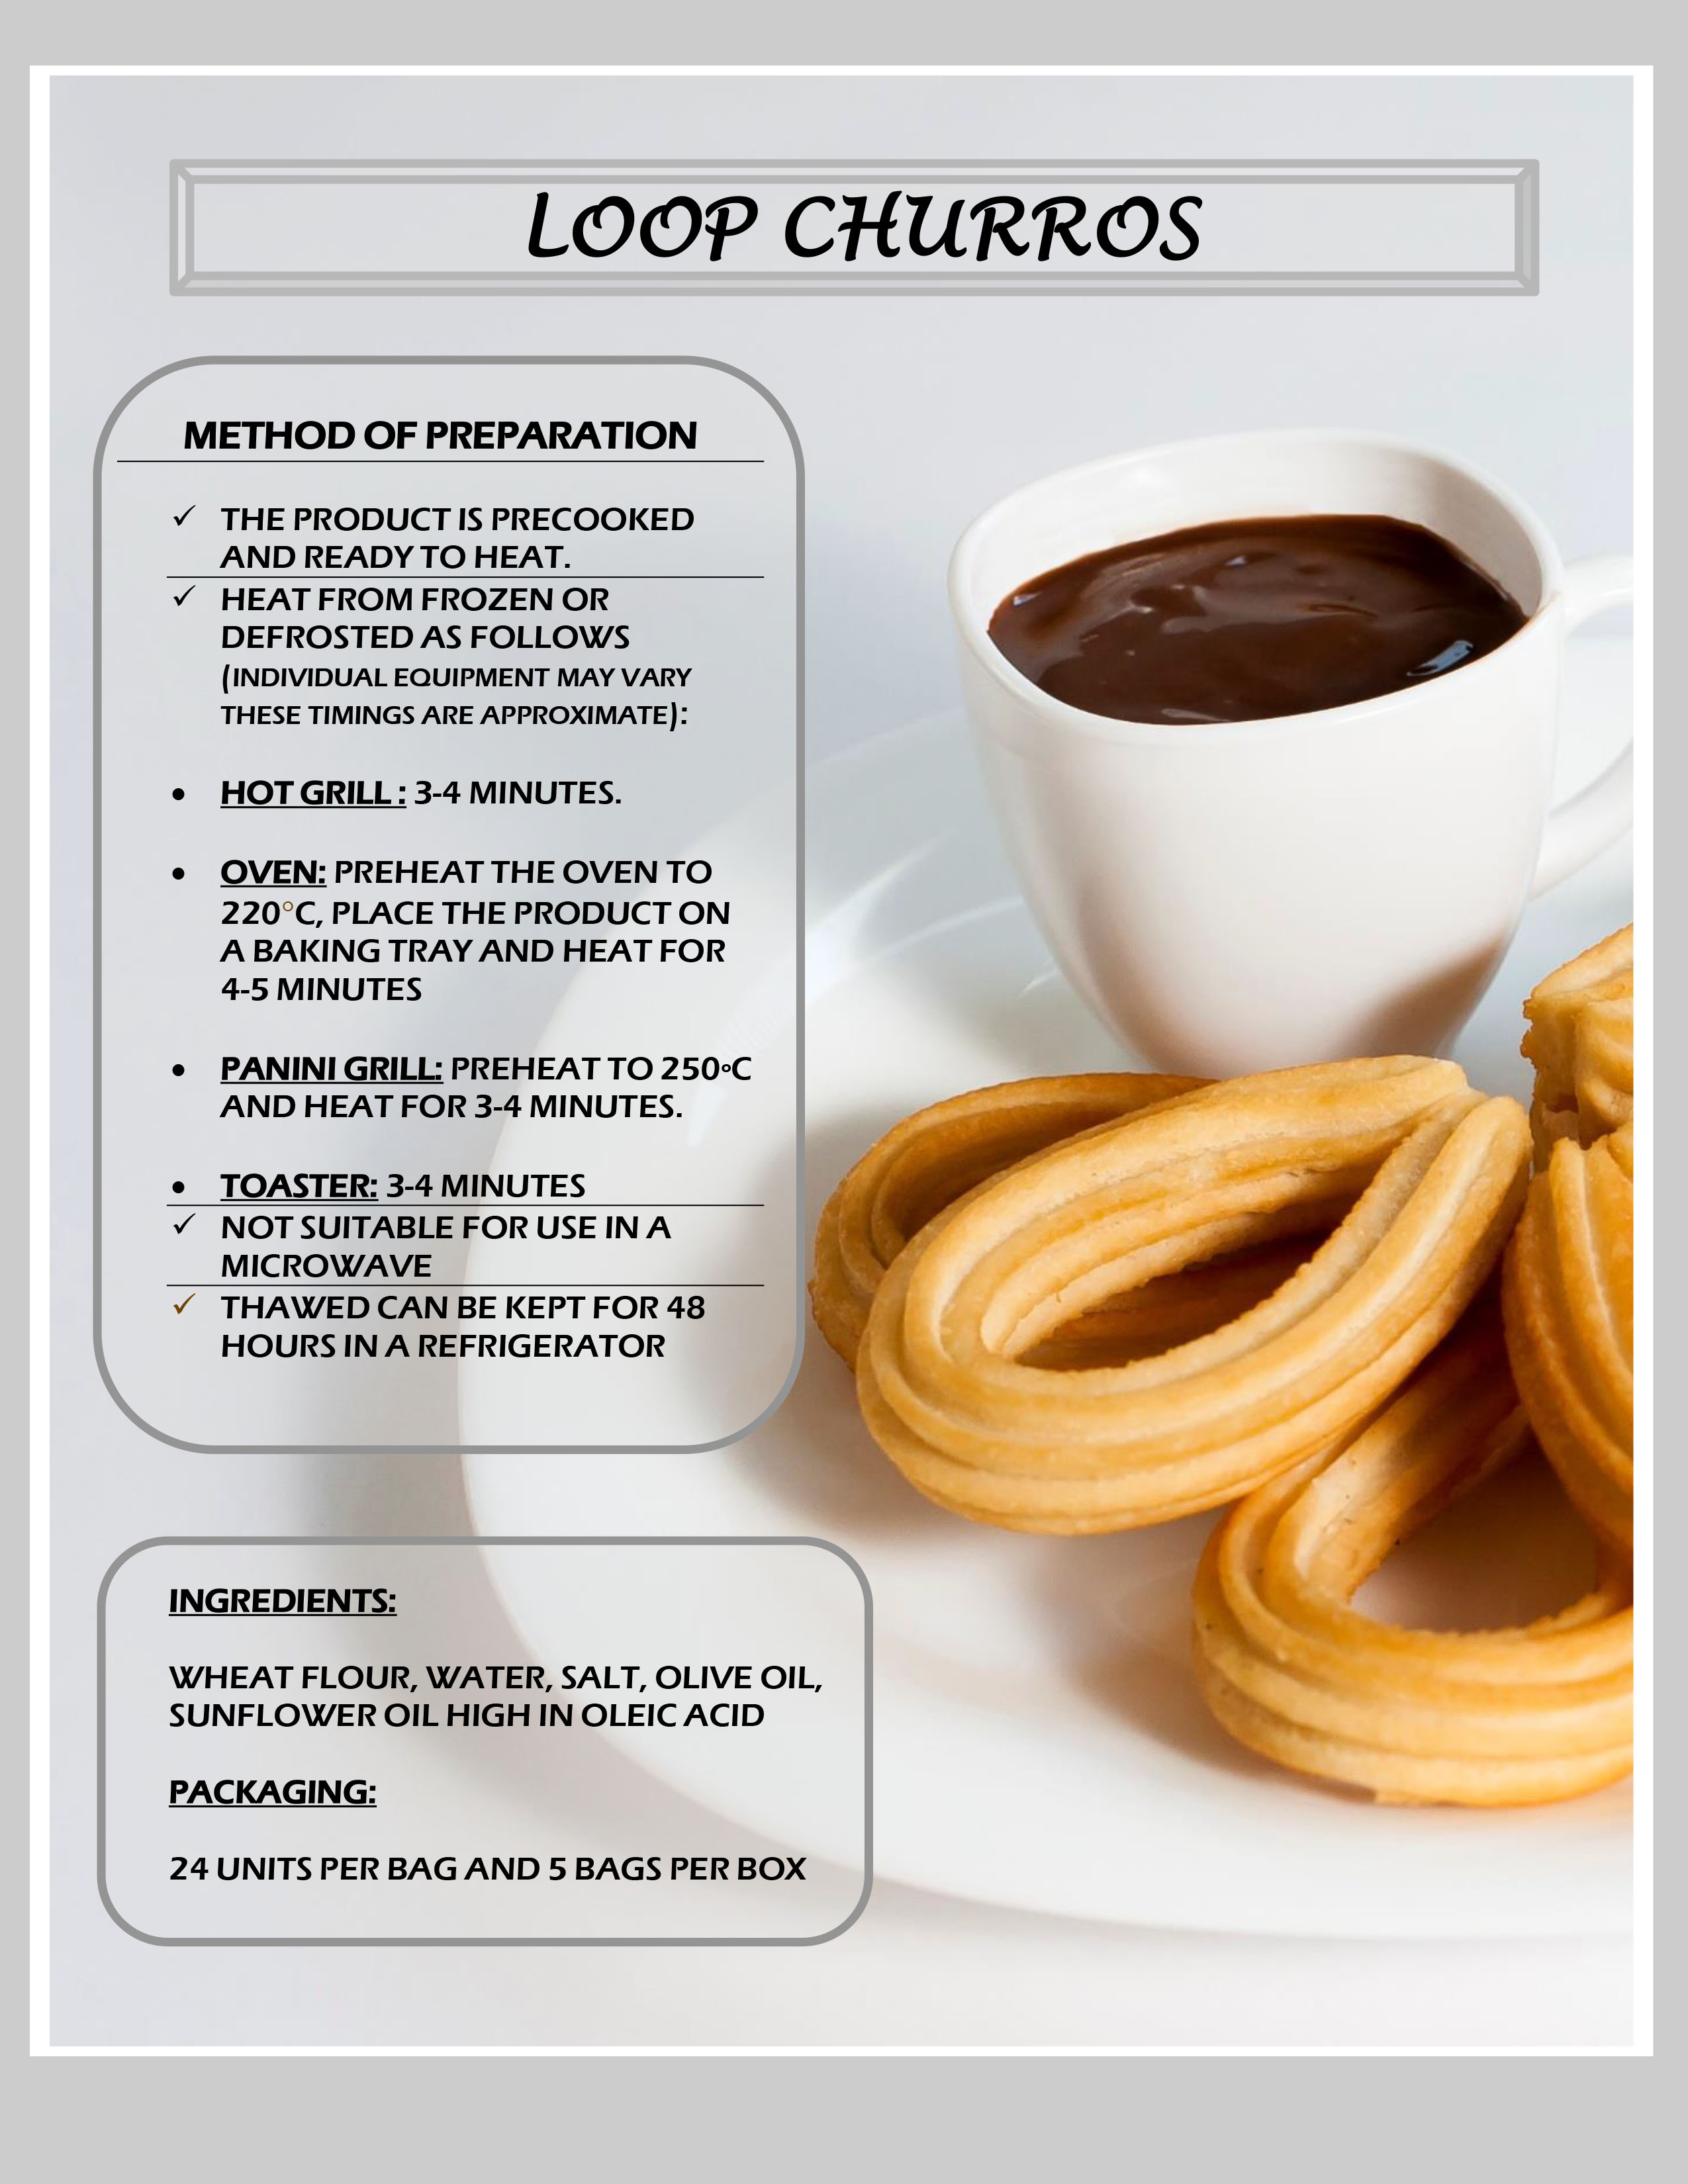 Churros Lopps - Cooked